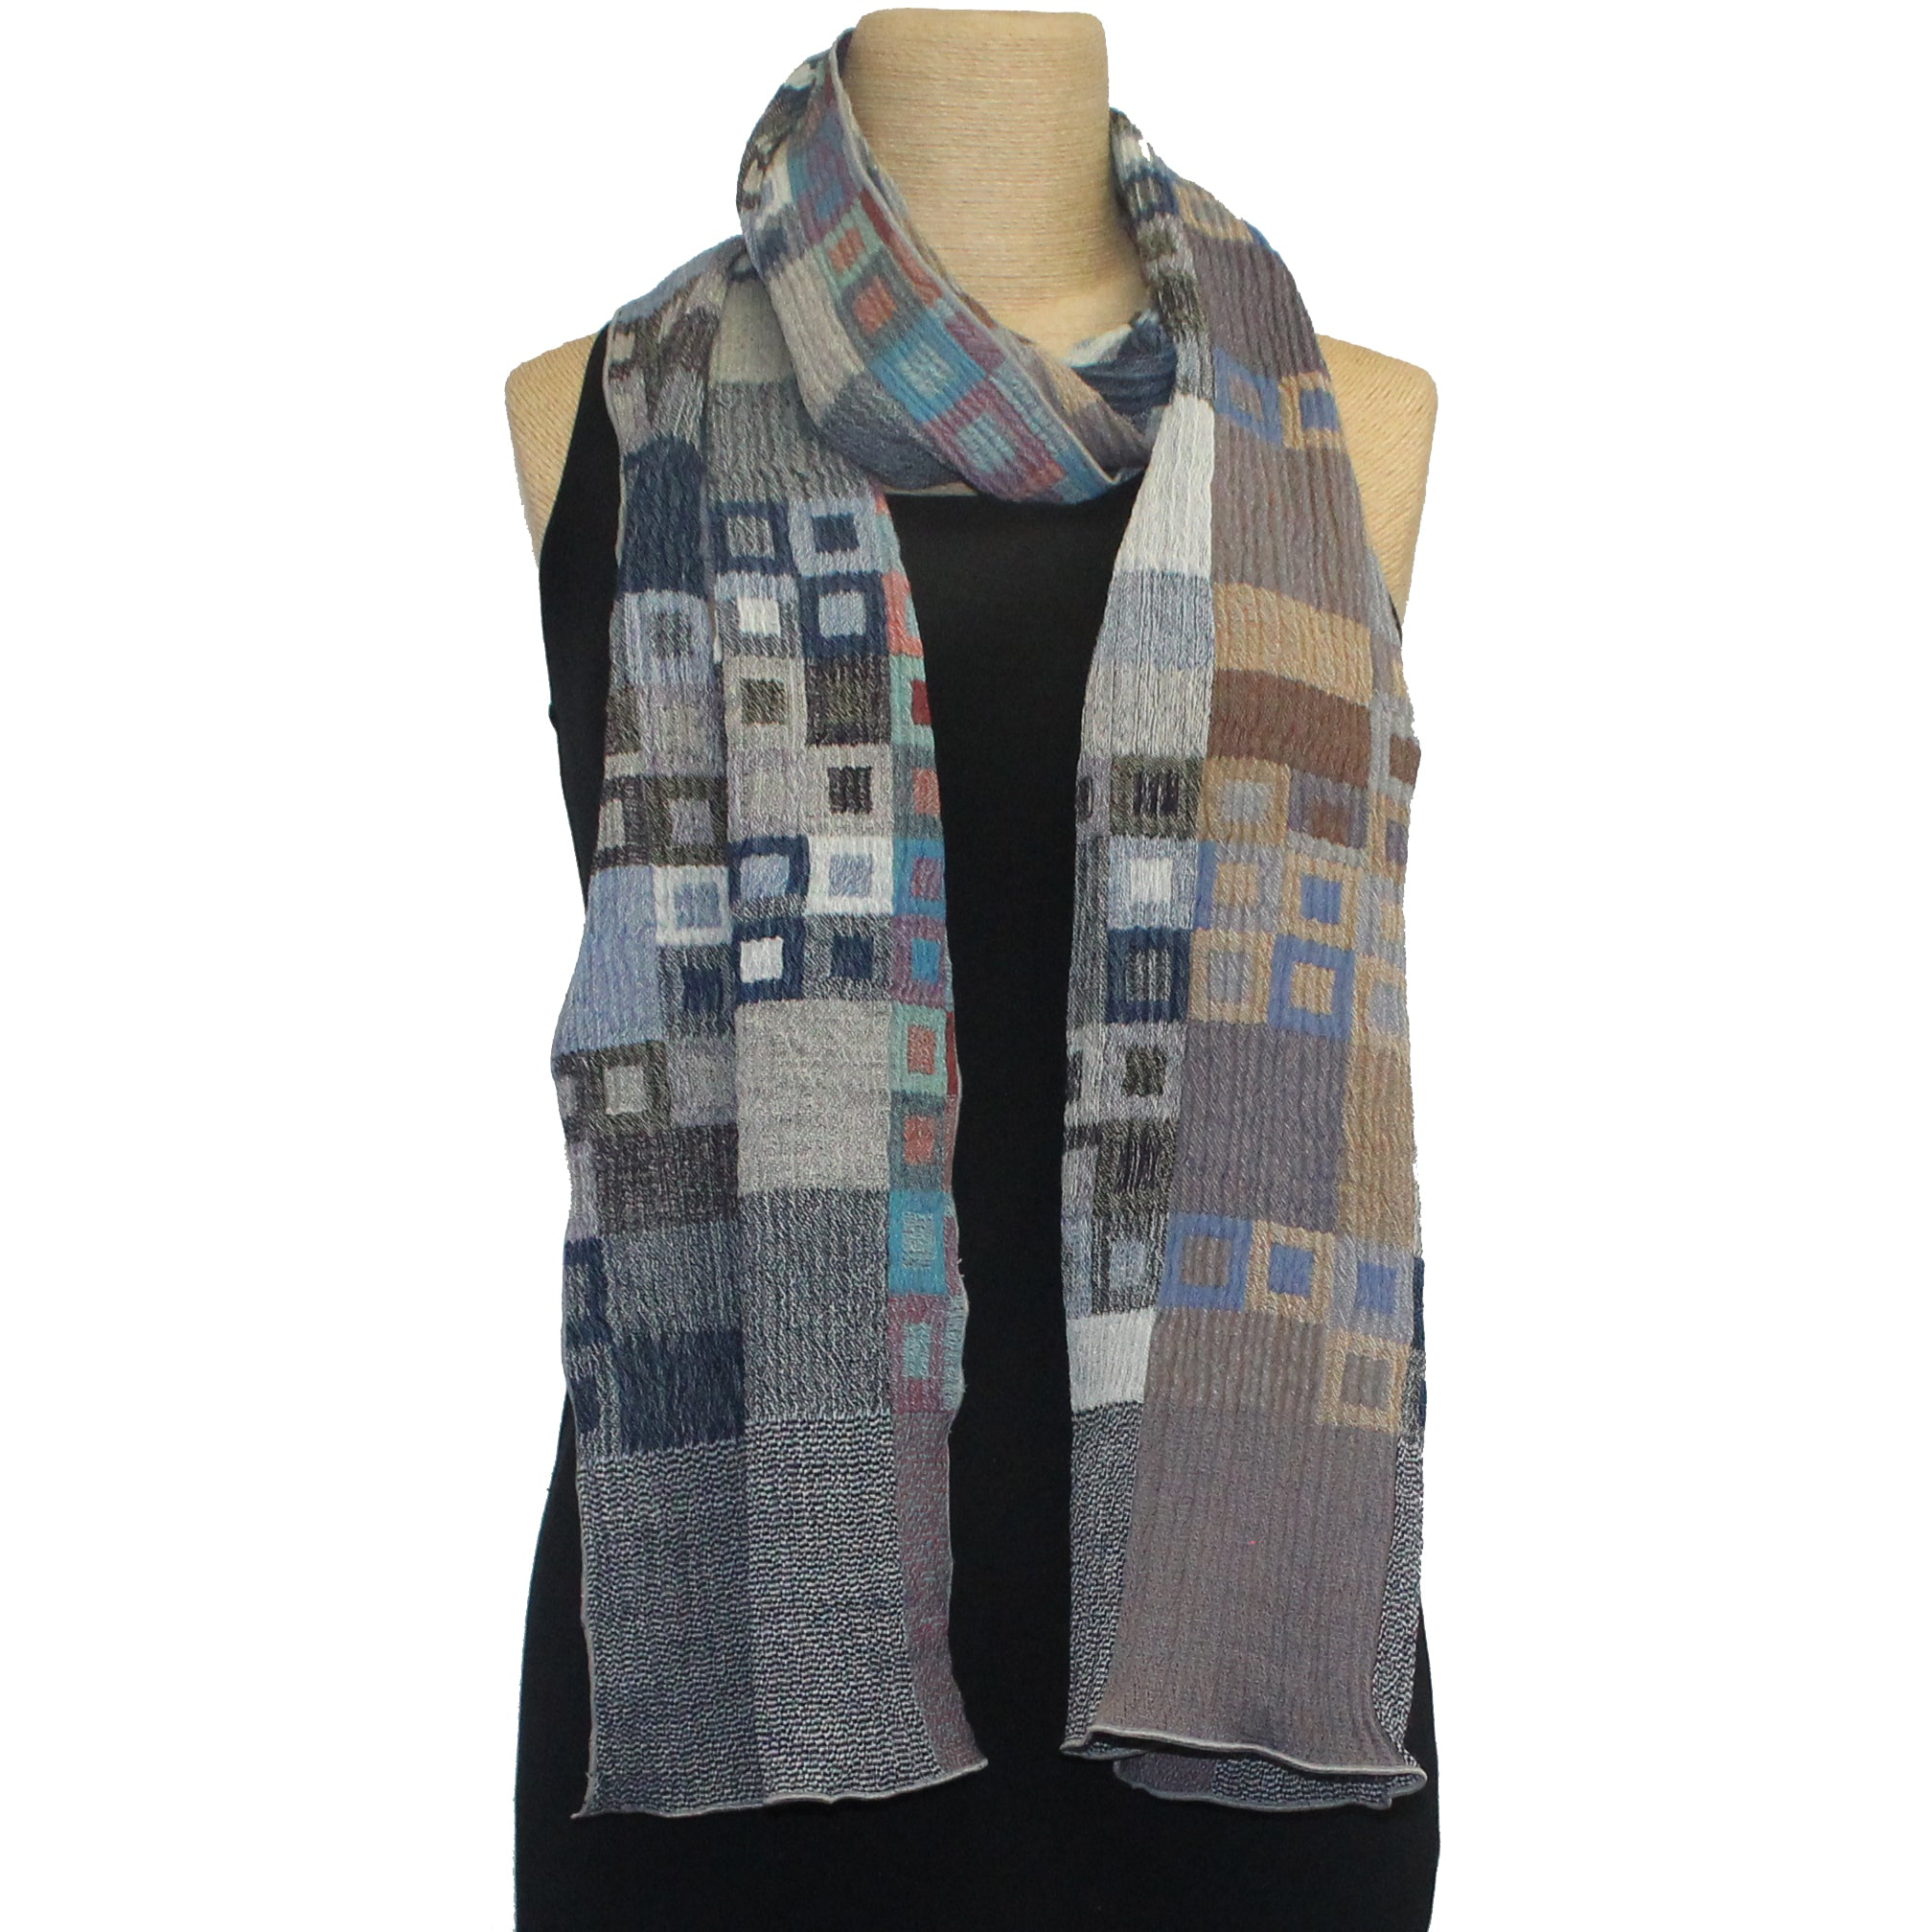 Nuno Shawl, Half Size, Glass Mosaic, Blue Mix